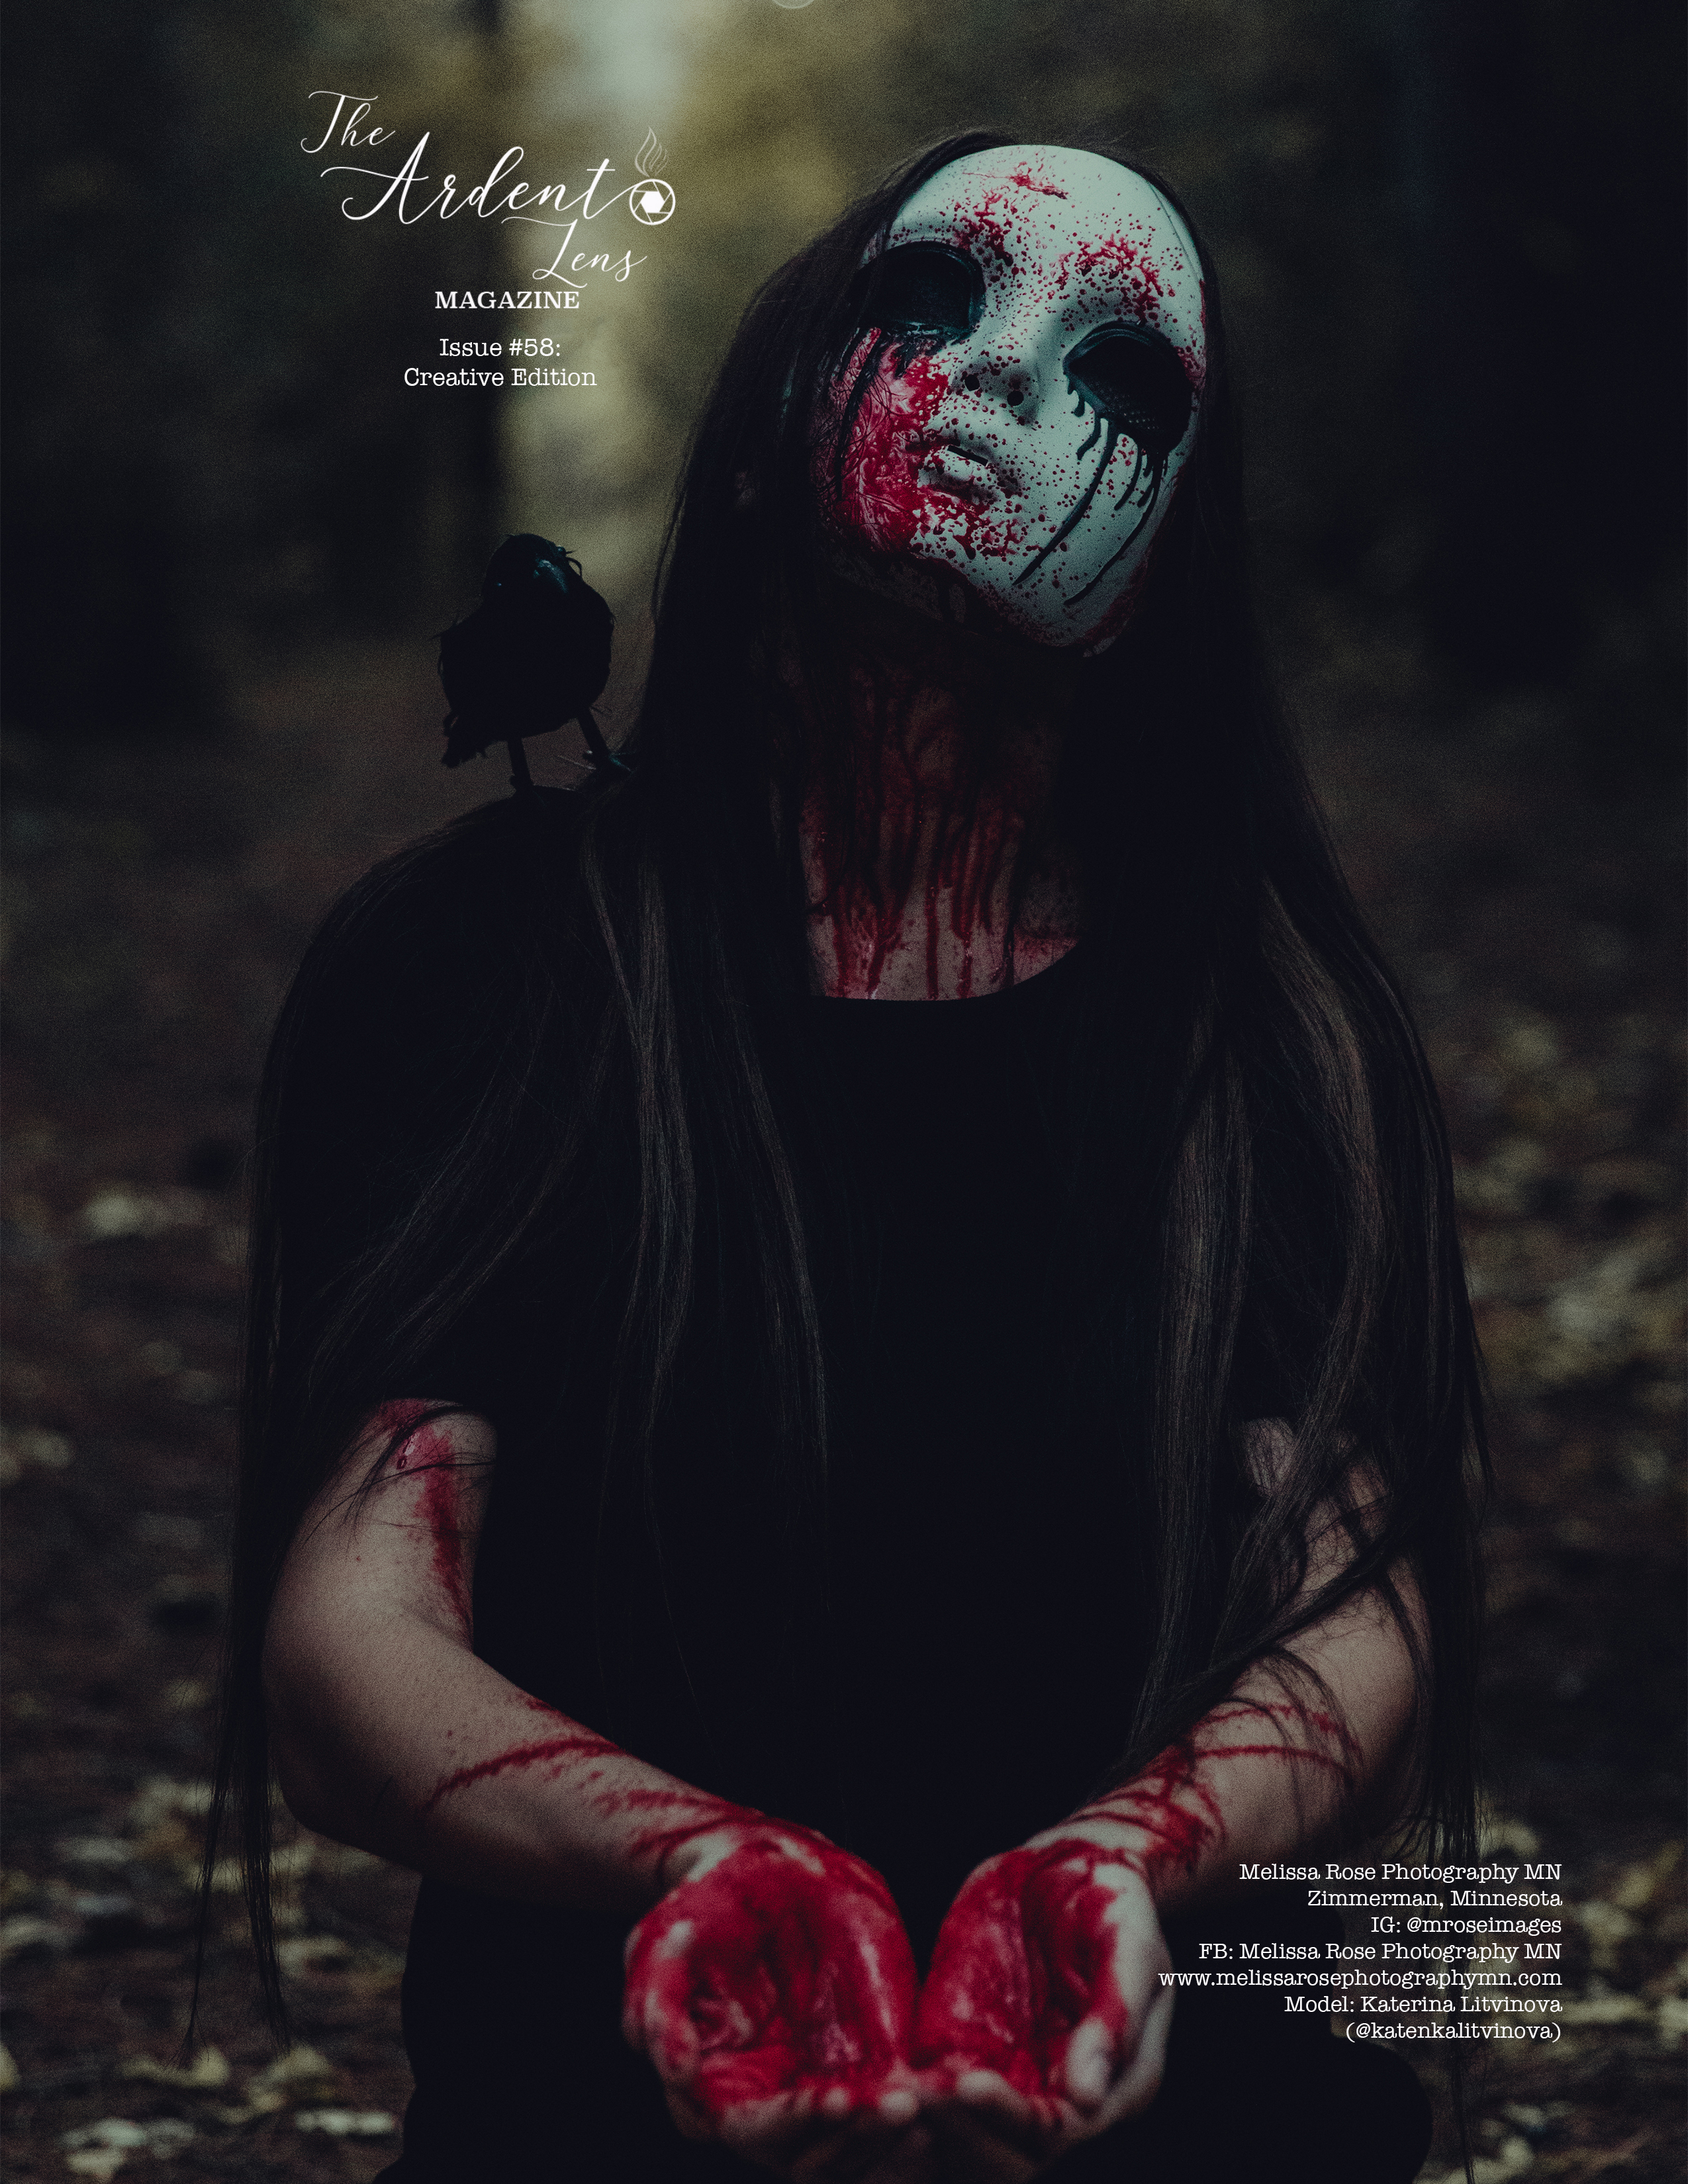 ISSUE #58